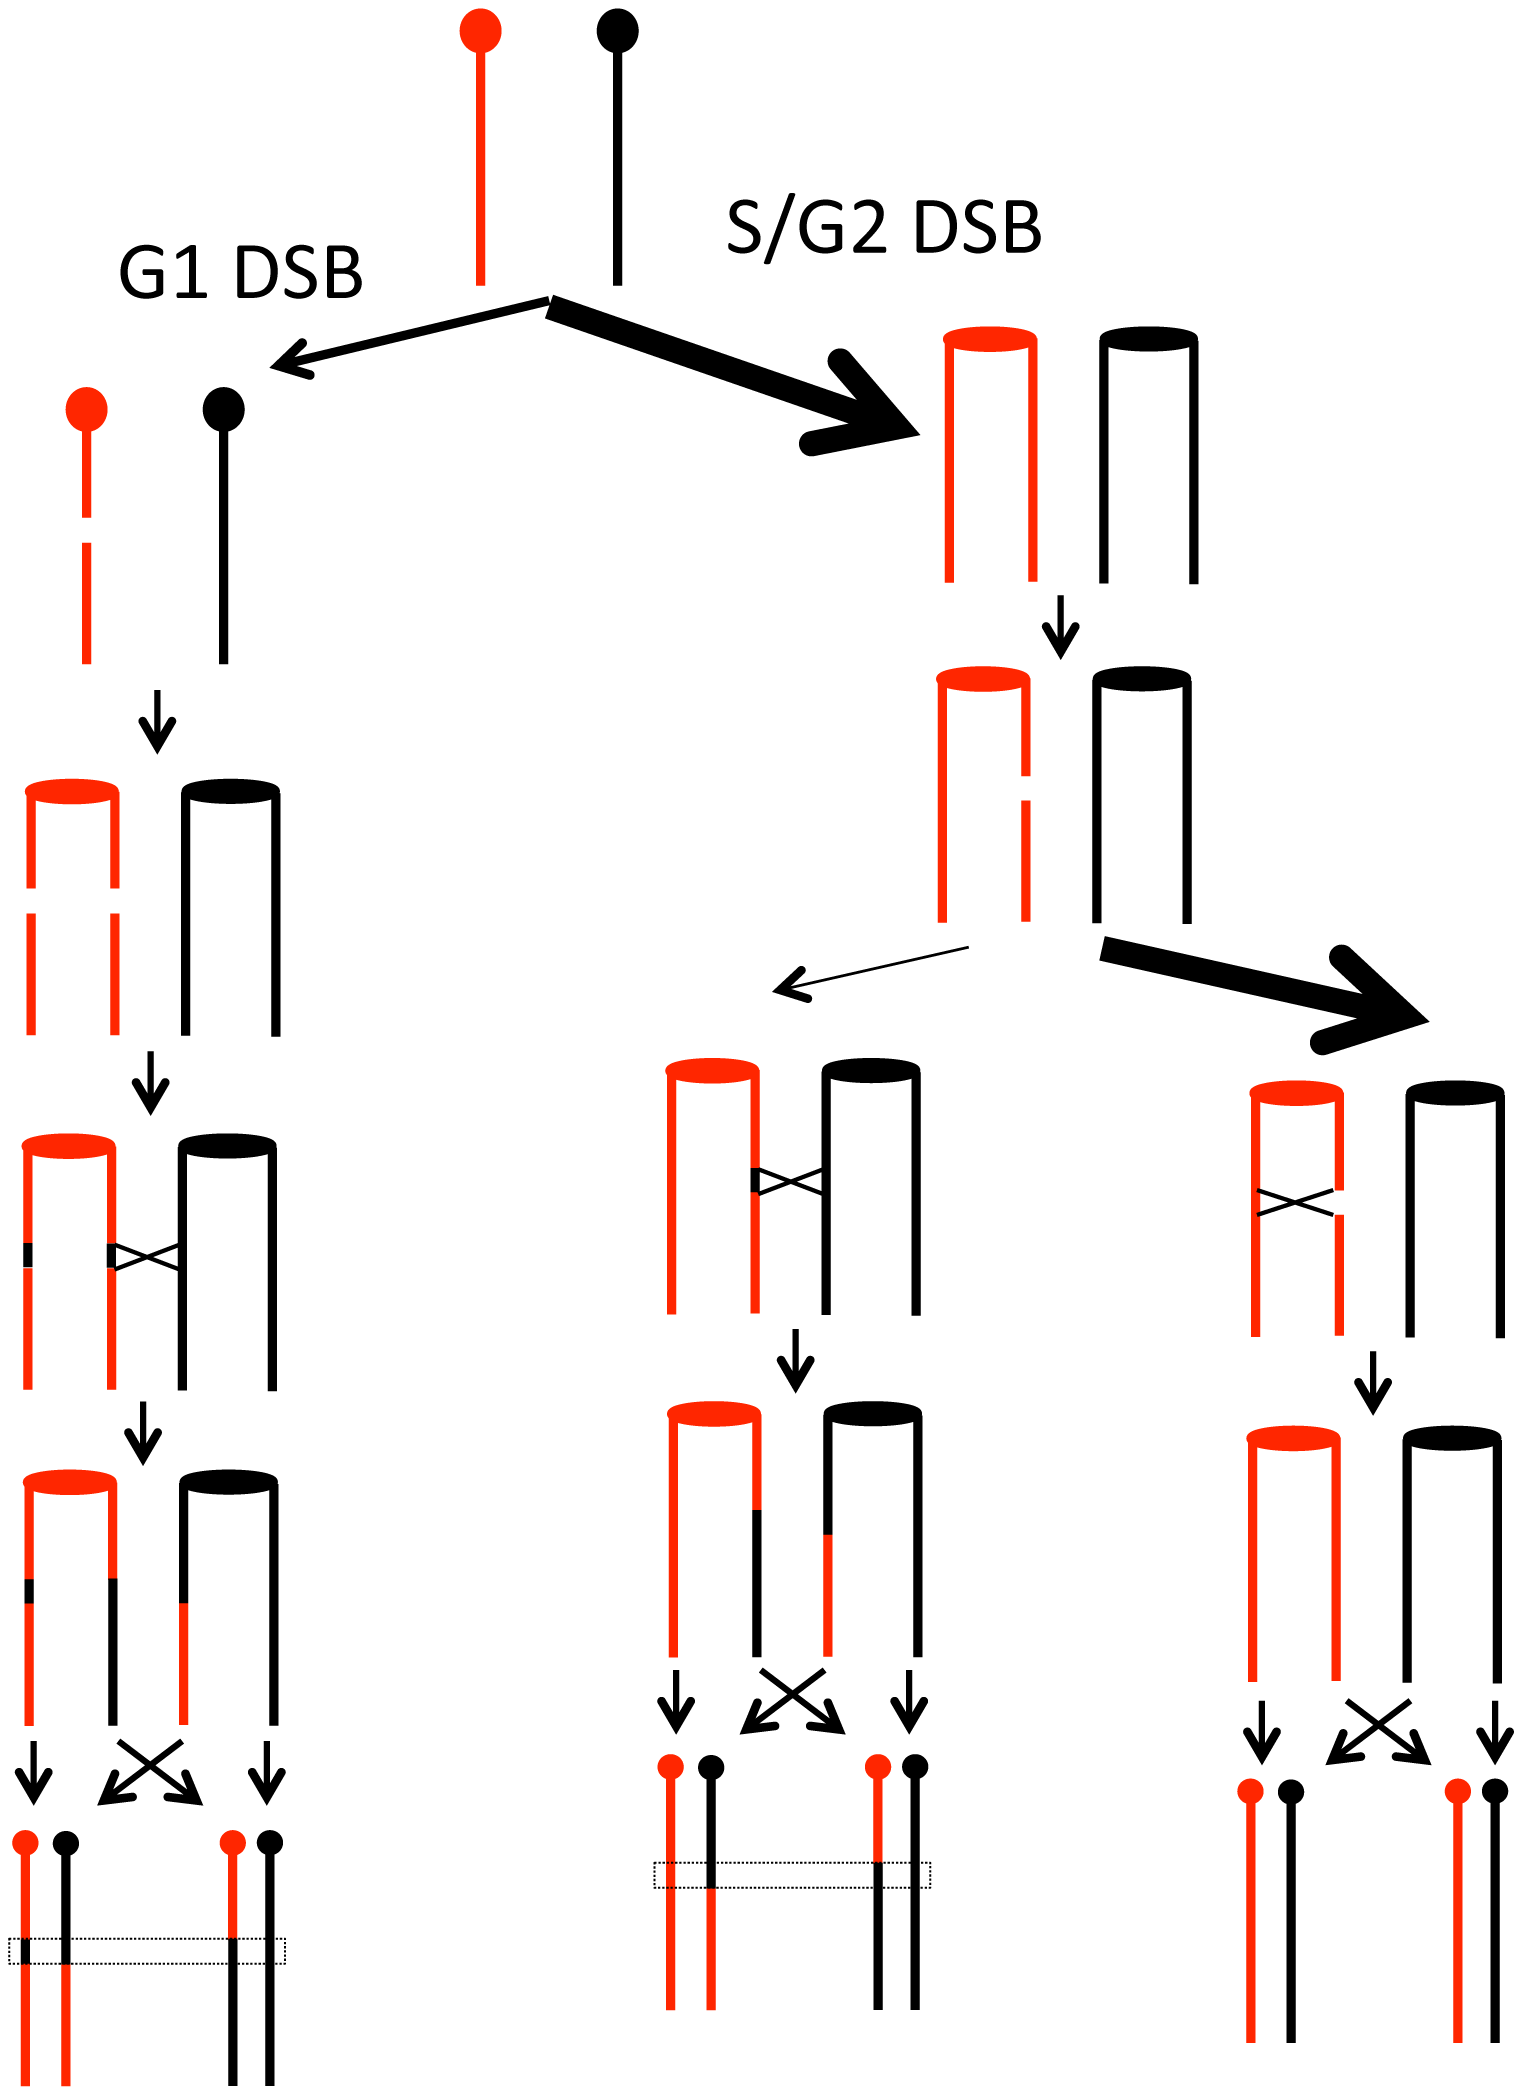 Model for homologous recombination repair choices depending on the timing of the initiating DSB lesion.